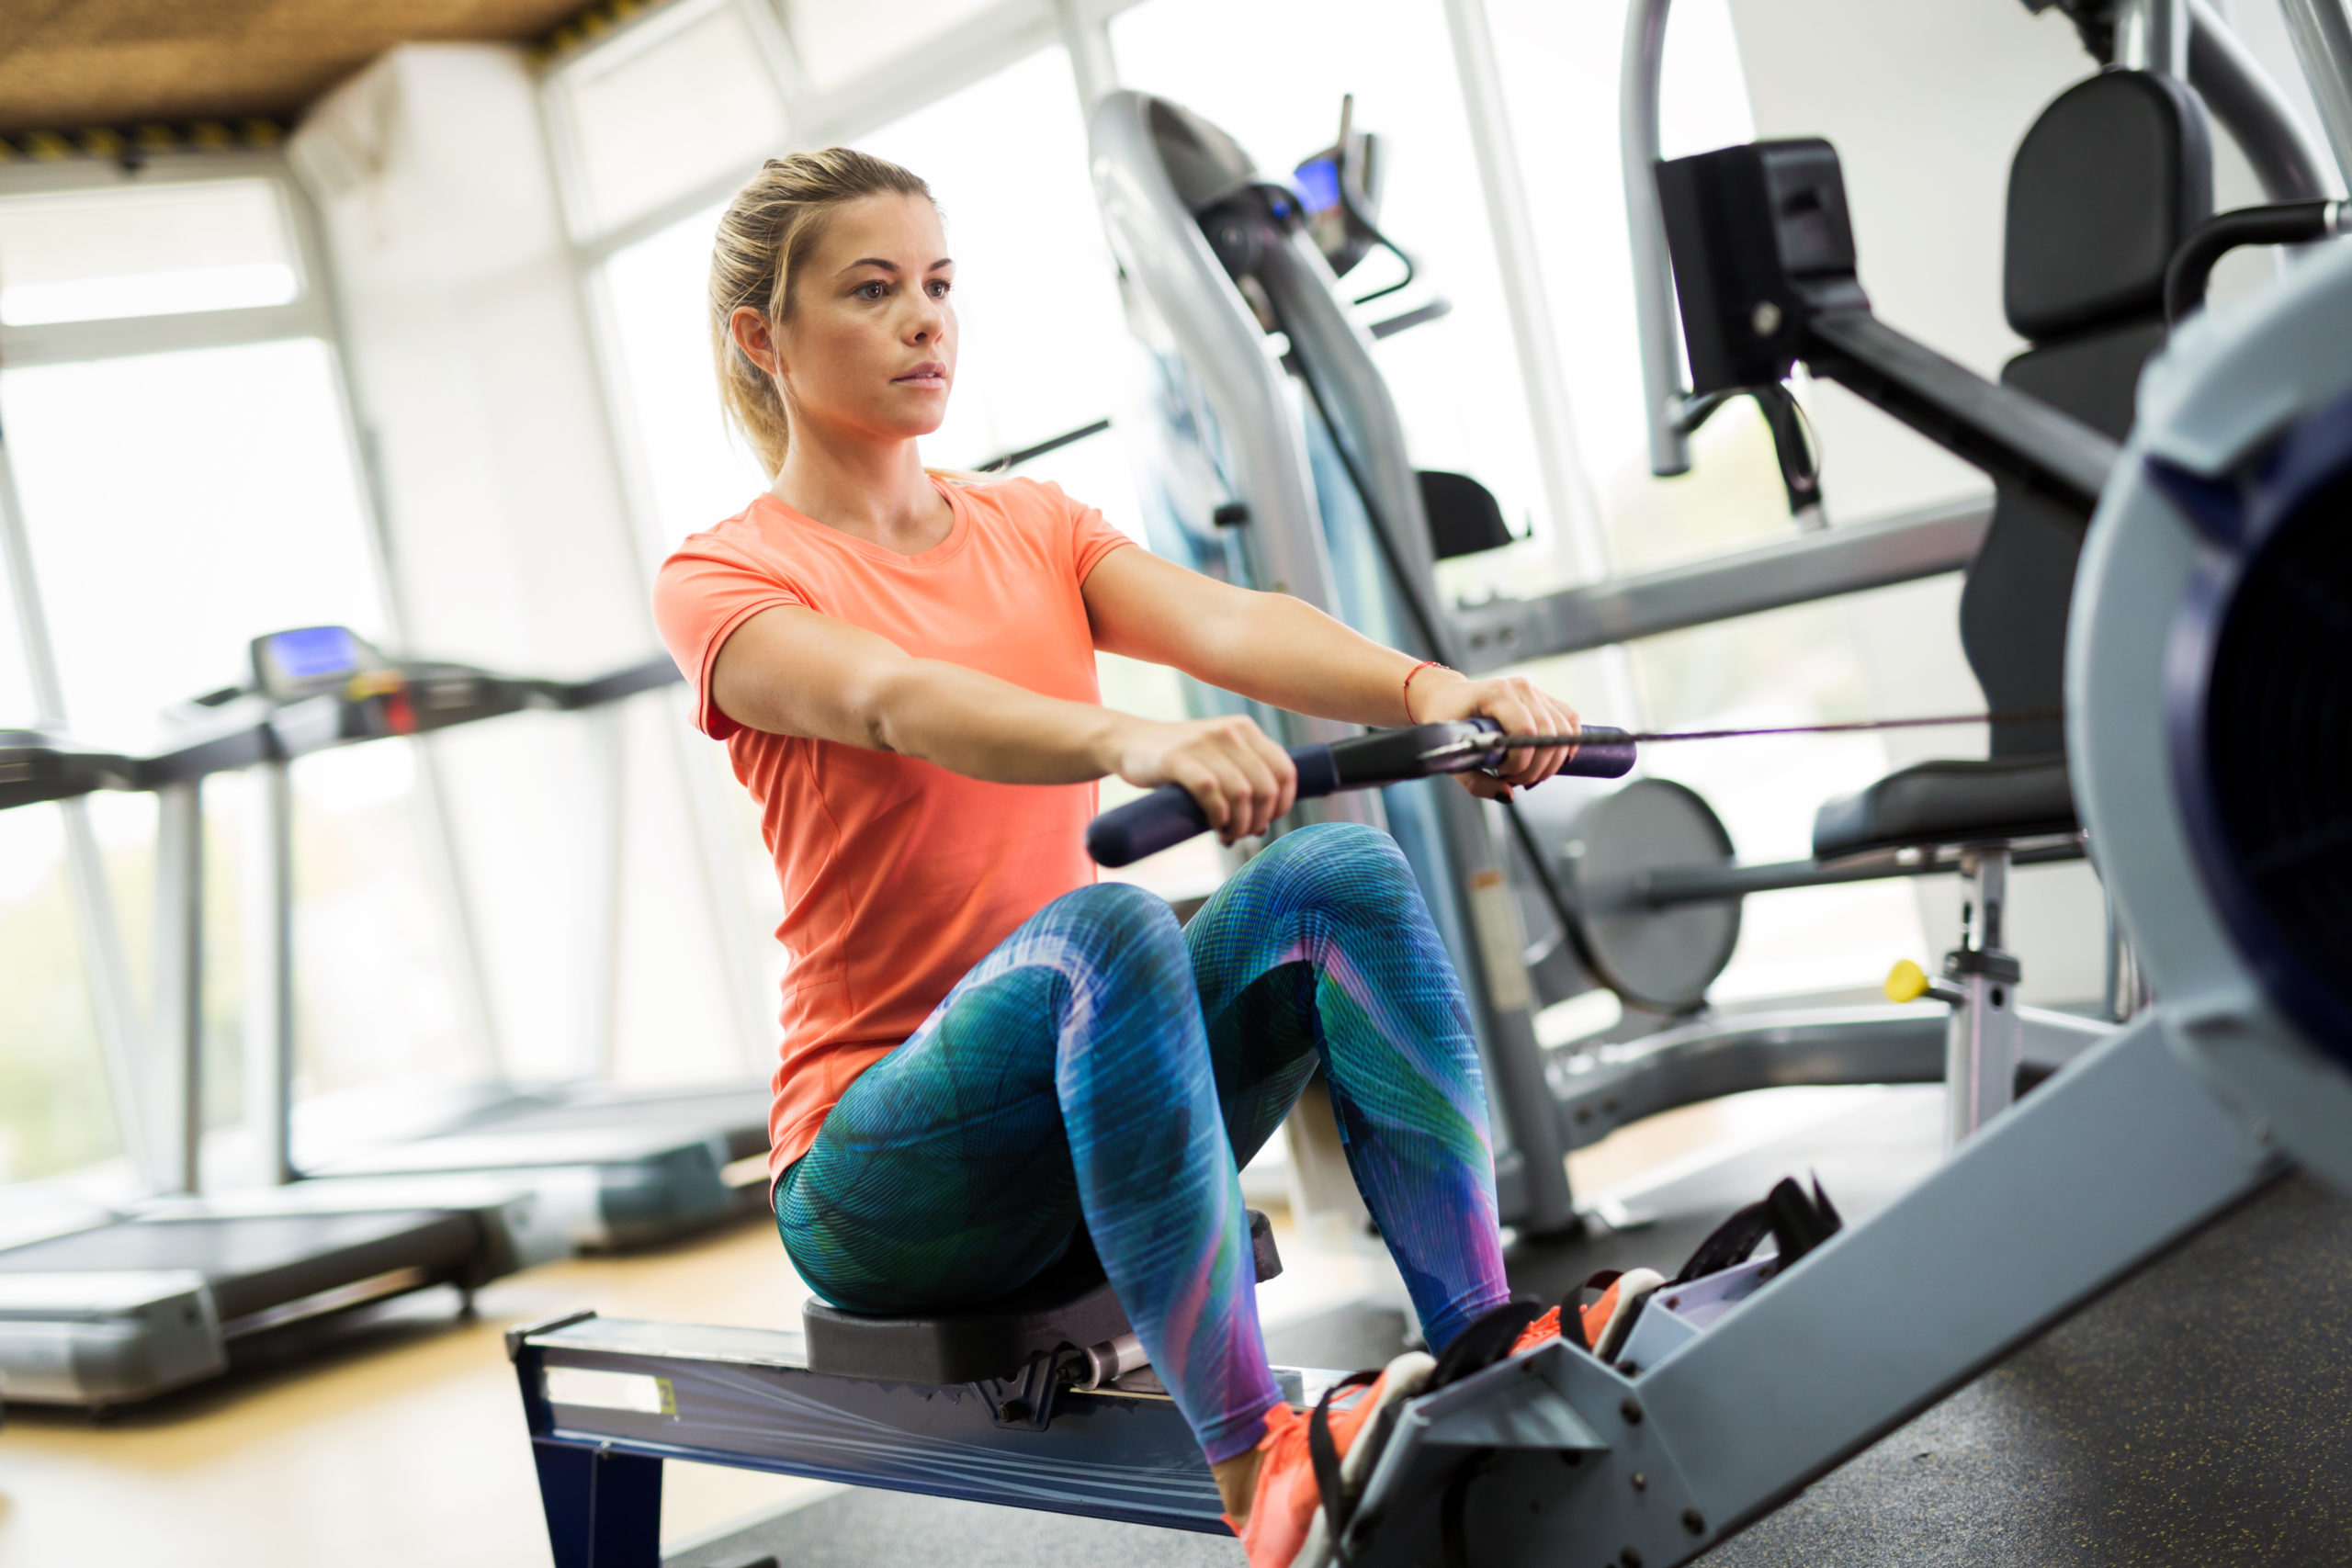 How to Incorporate the Rower into Your Workout Routine